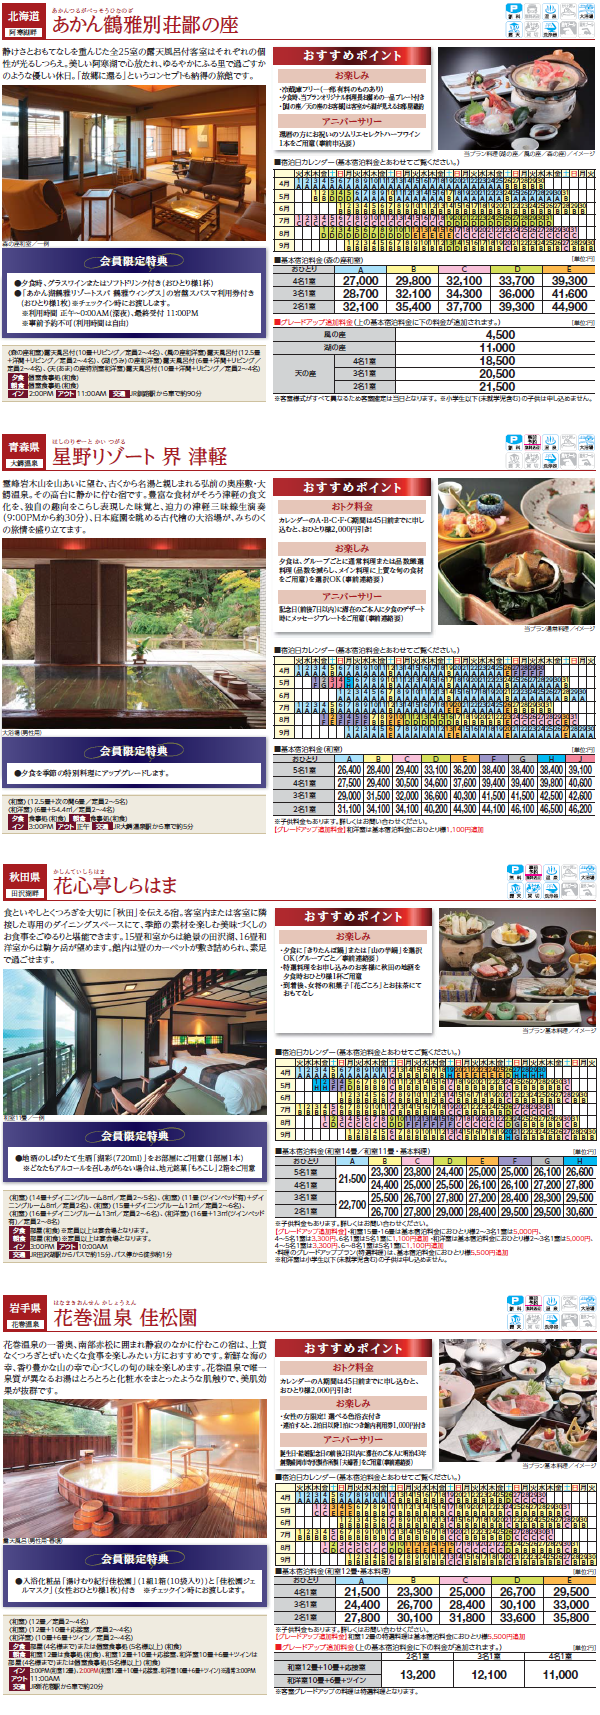 stay_plan_ryokan_1403_3